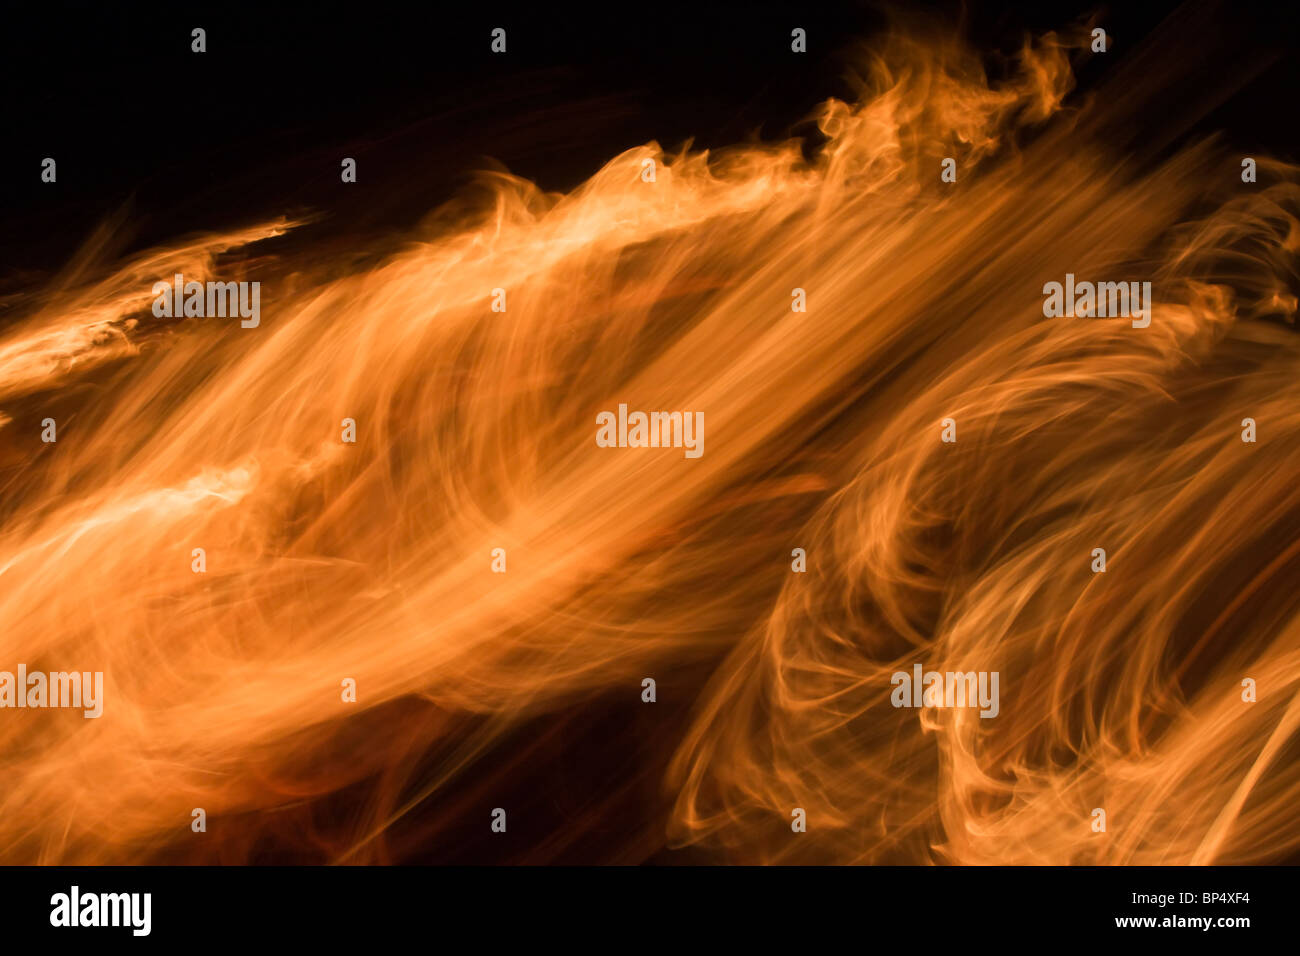 Blur of the blazing fire. - Stock Image